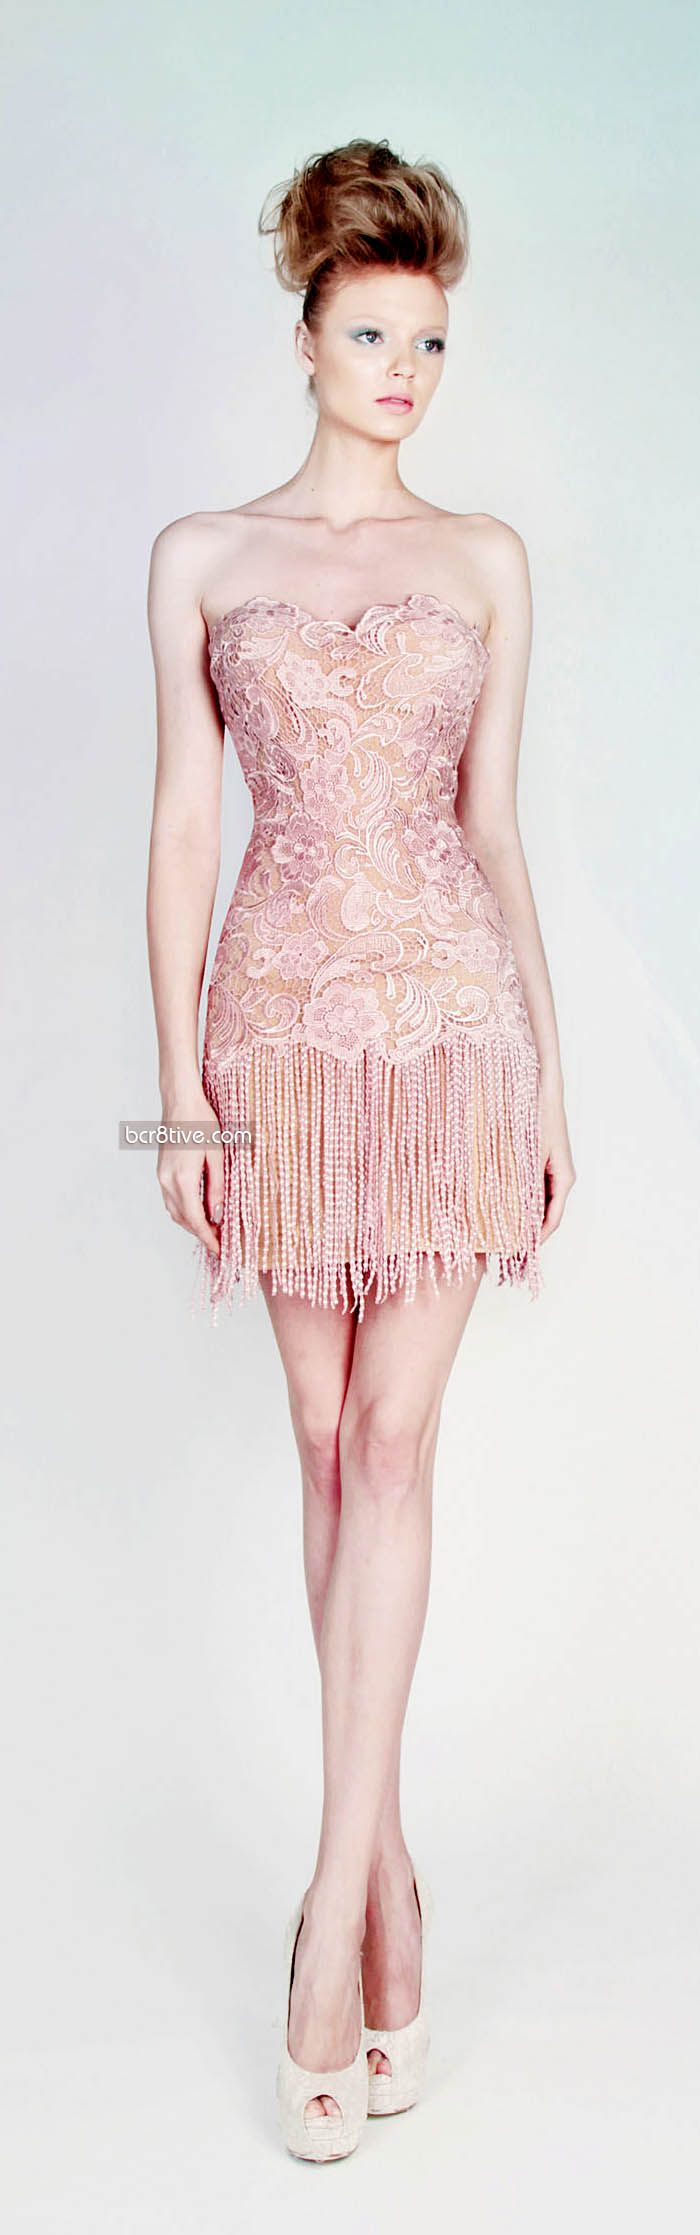 121 best Dresses (that I have nothing to wear them for) images on ...